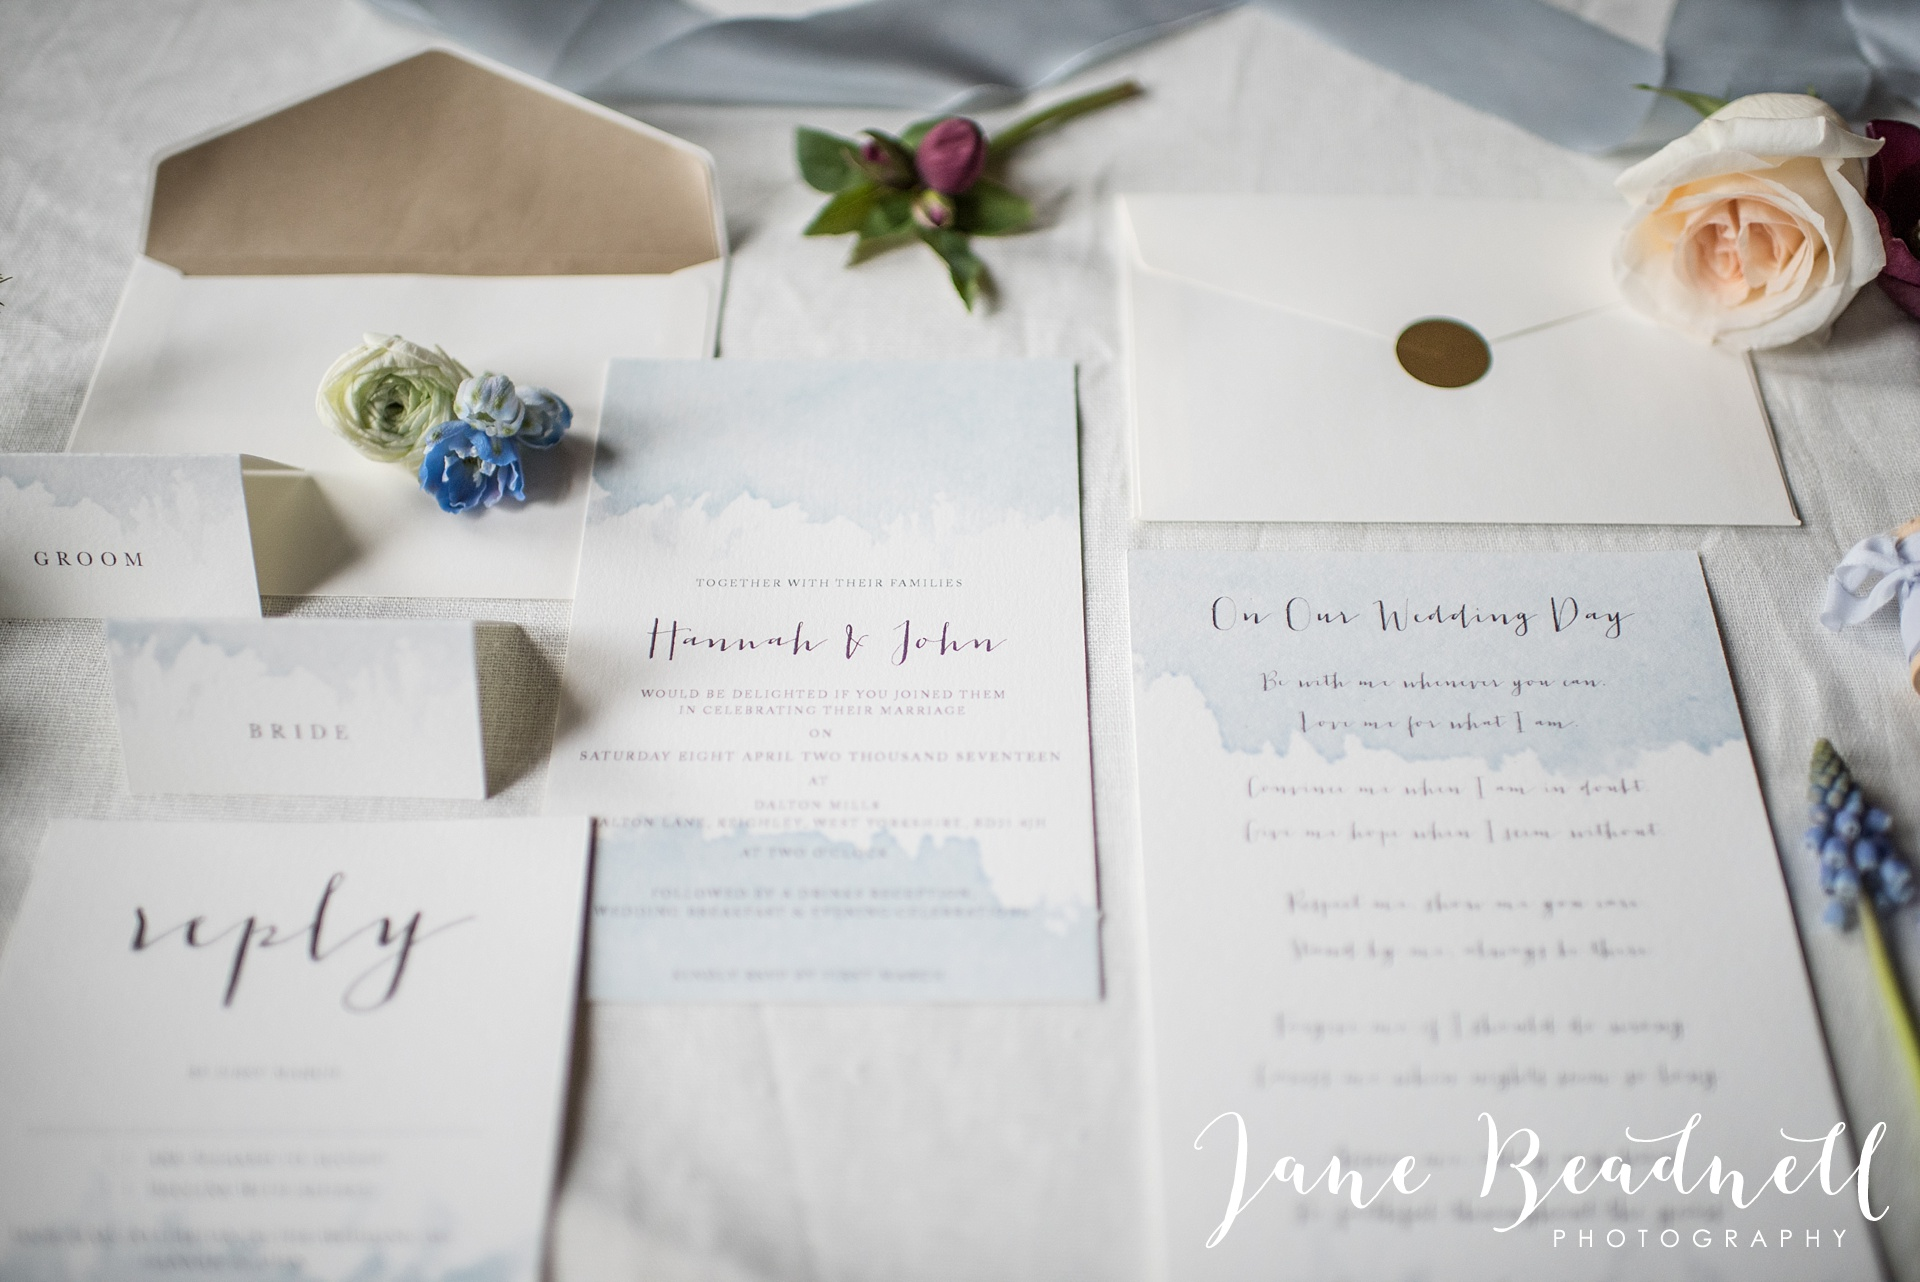 Ballet themed styled wedding shoot at Dalton Mills by Jane Beadnell Photography-0_0006